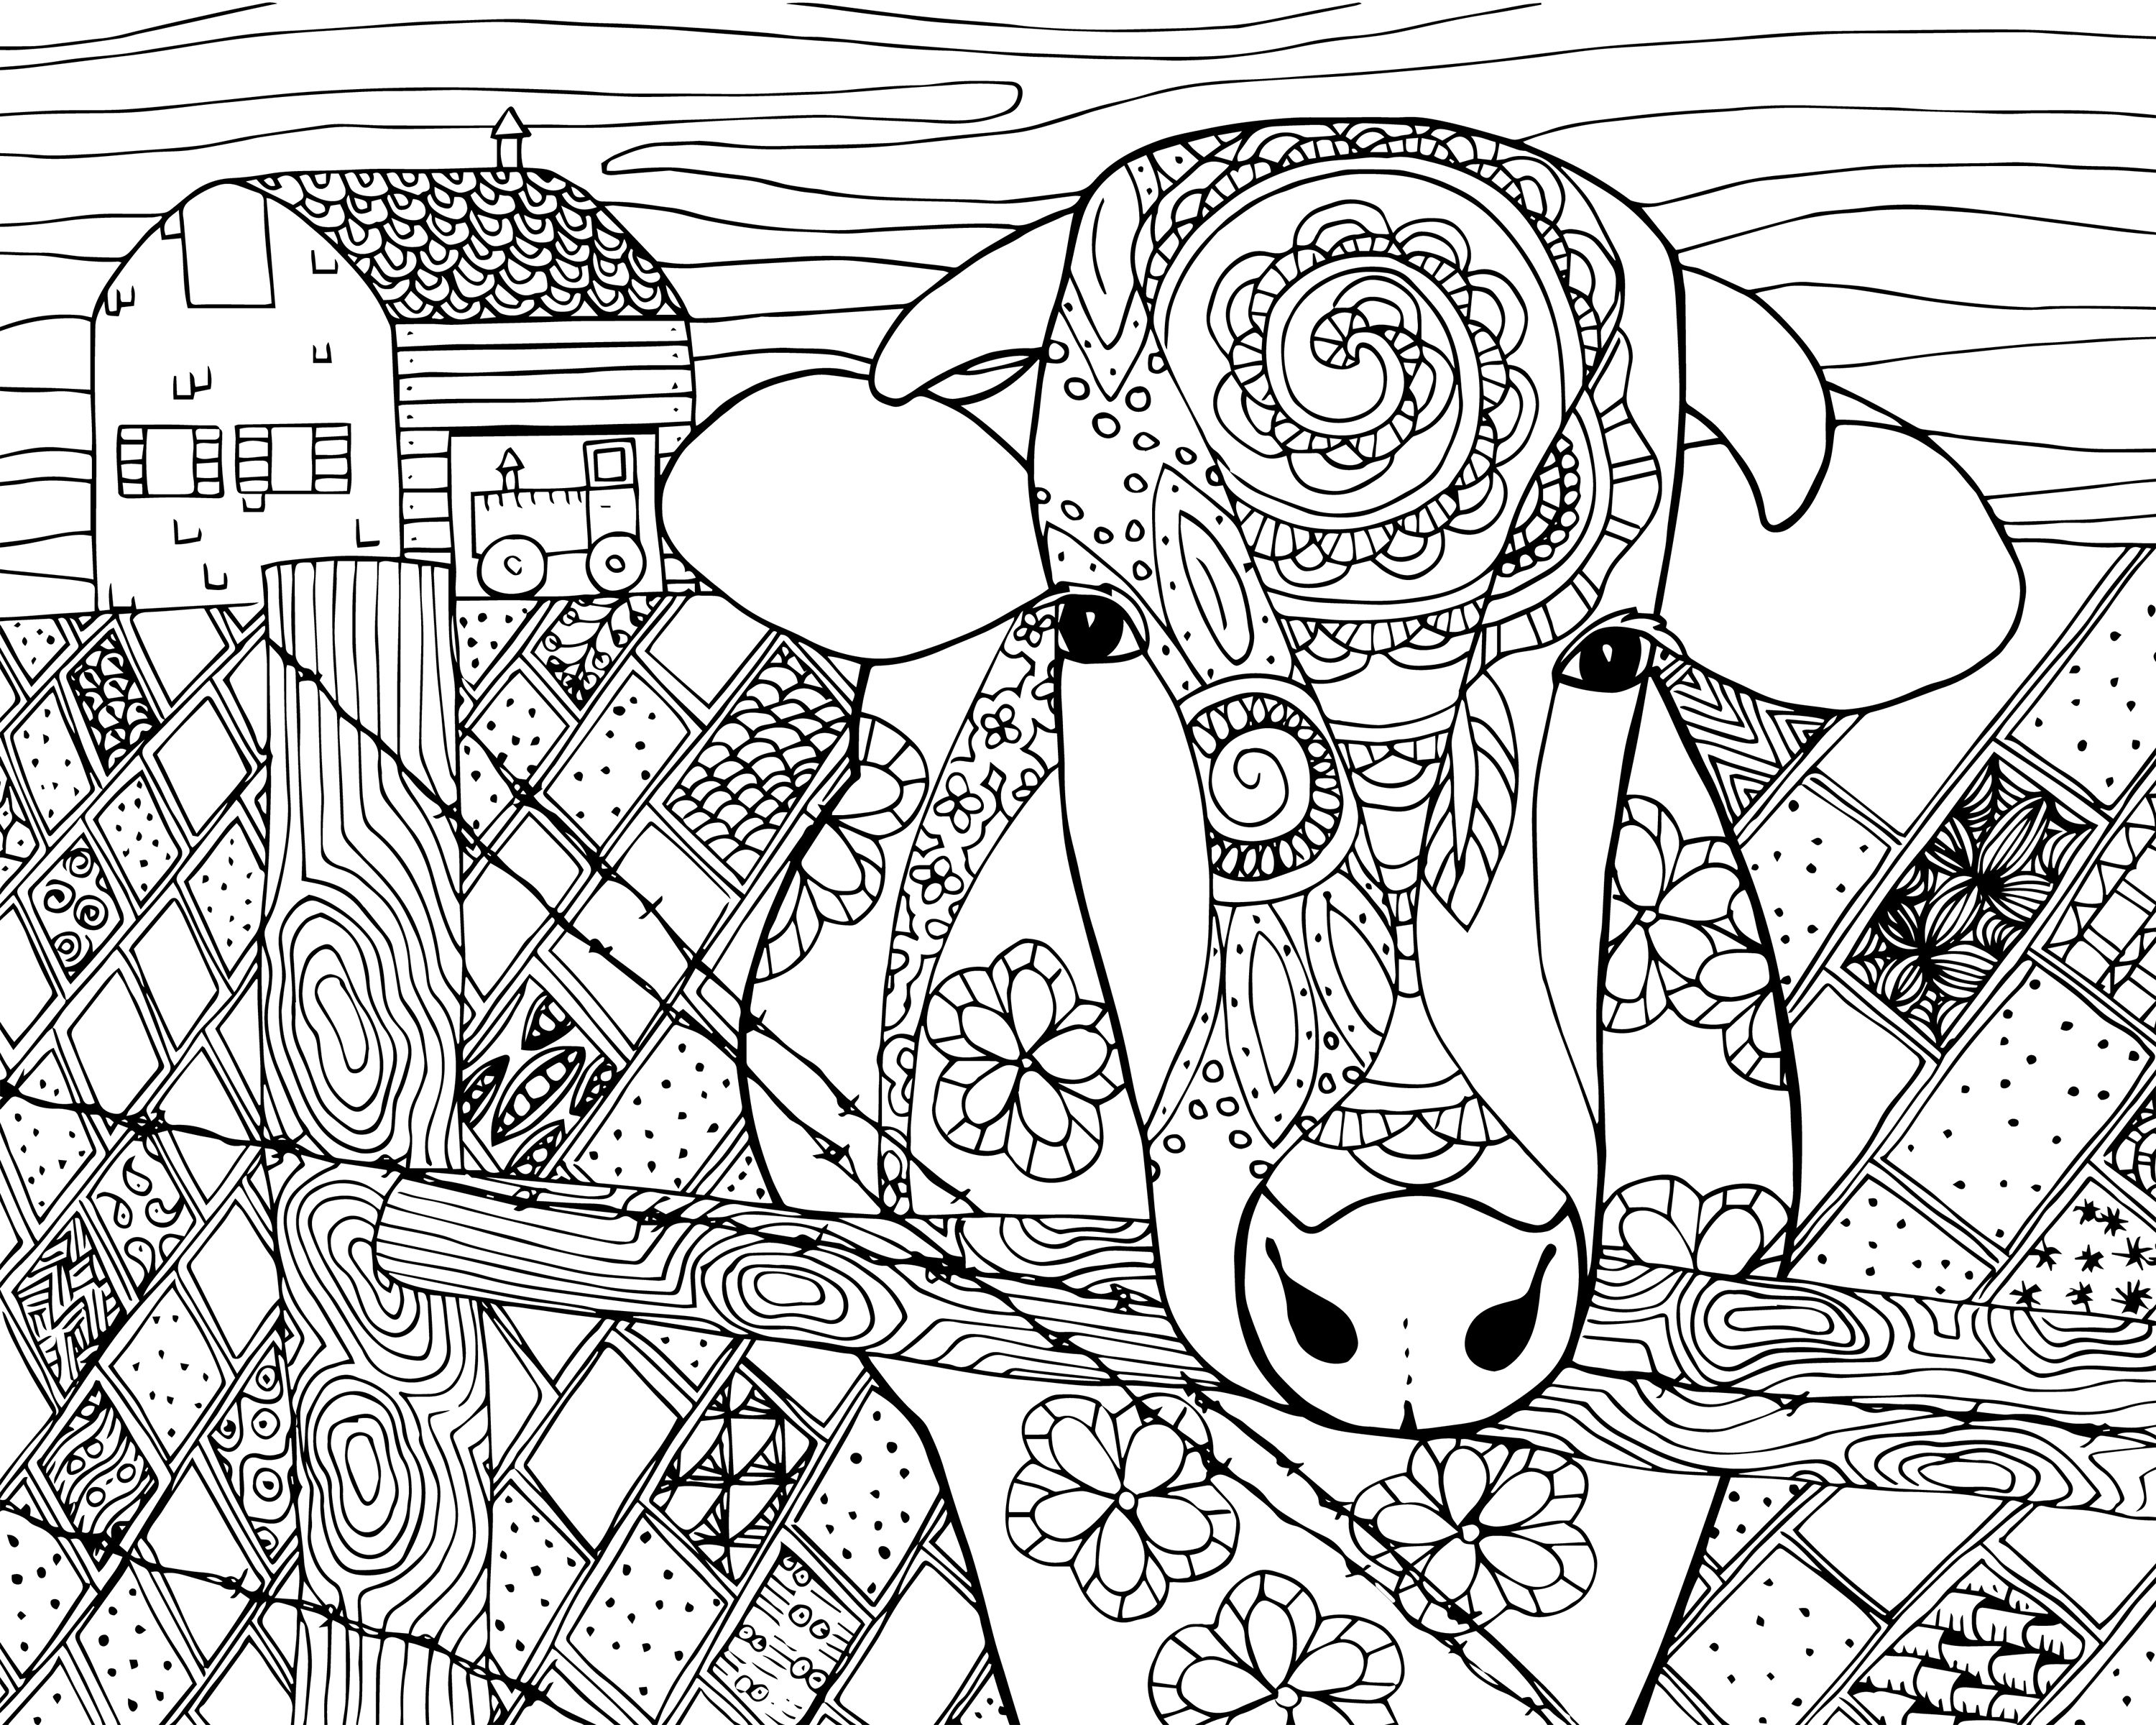 Free Coloring Pages Adults Art And Abstract Category Image